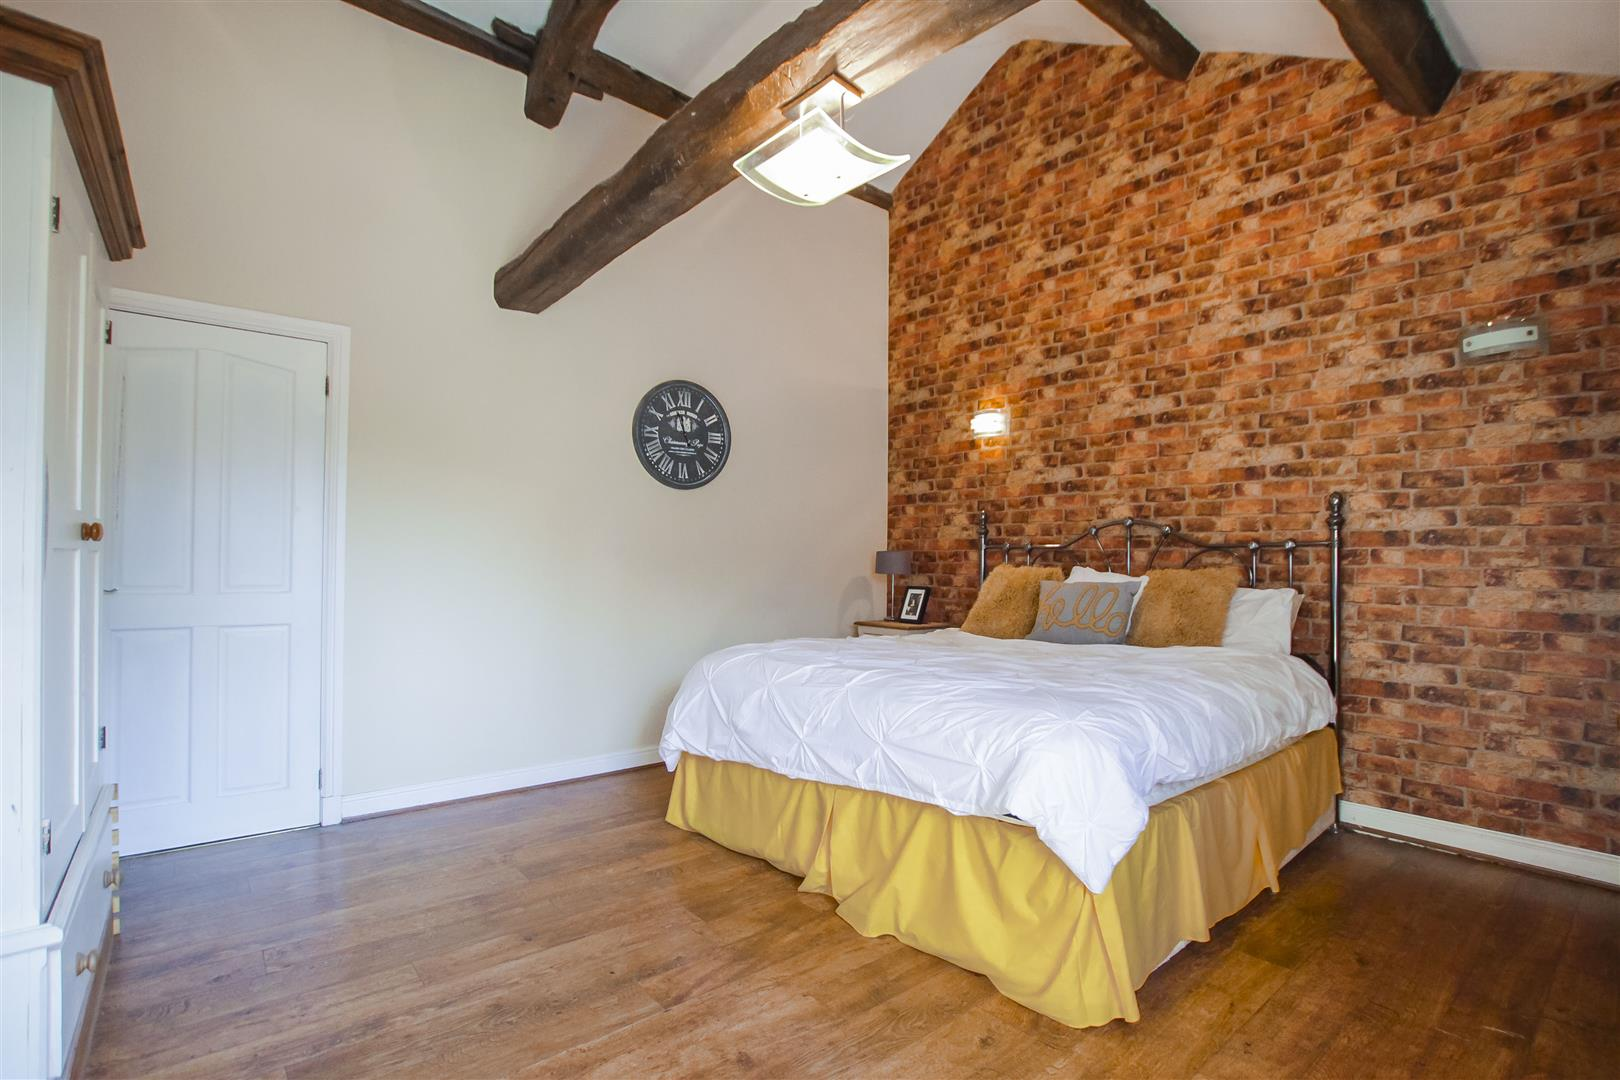 4 Bedroom Barn Conversion For Sale - Image 21